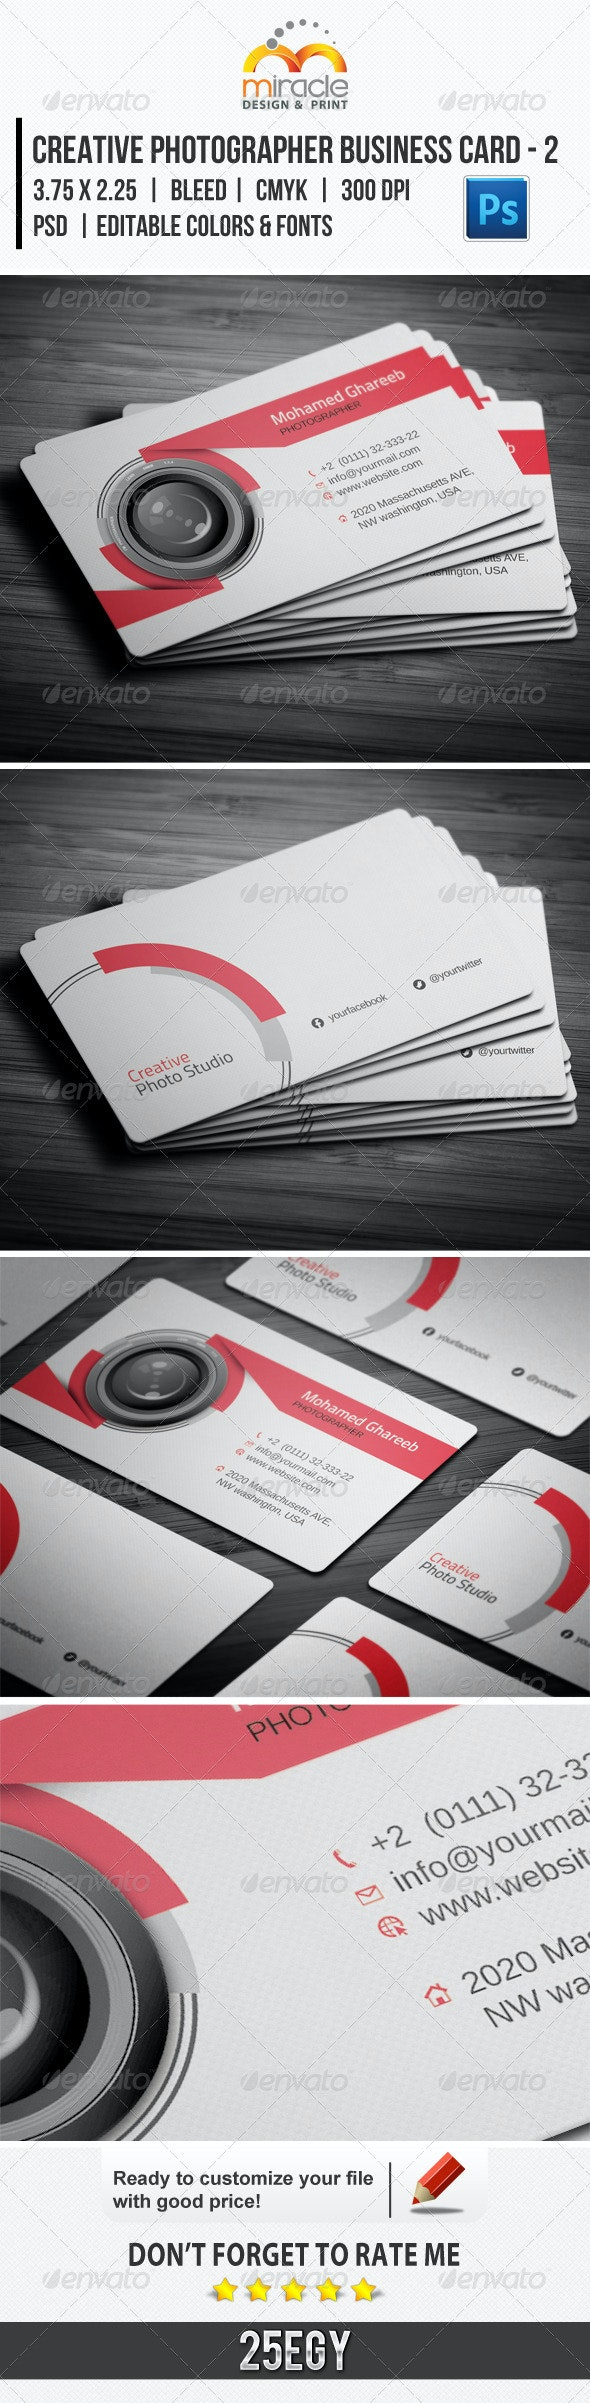 Creative Photographer Business Card - 2 - Creative Business Cards